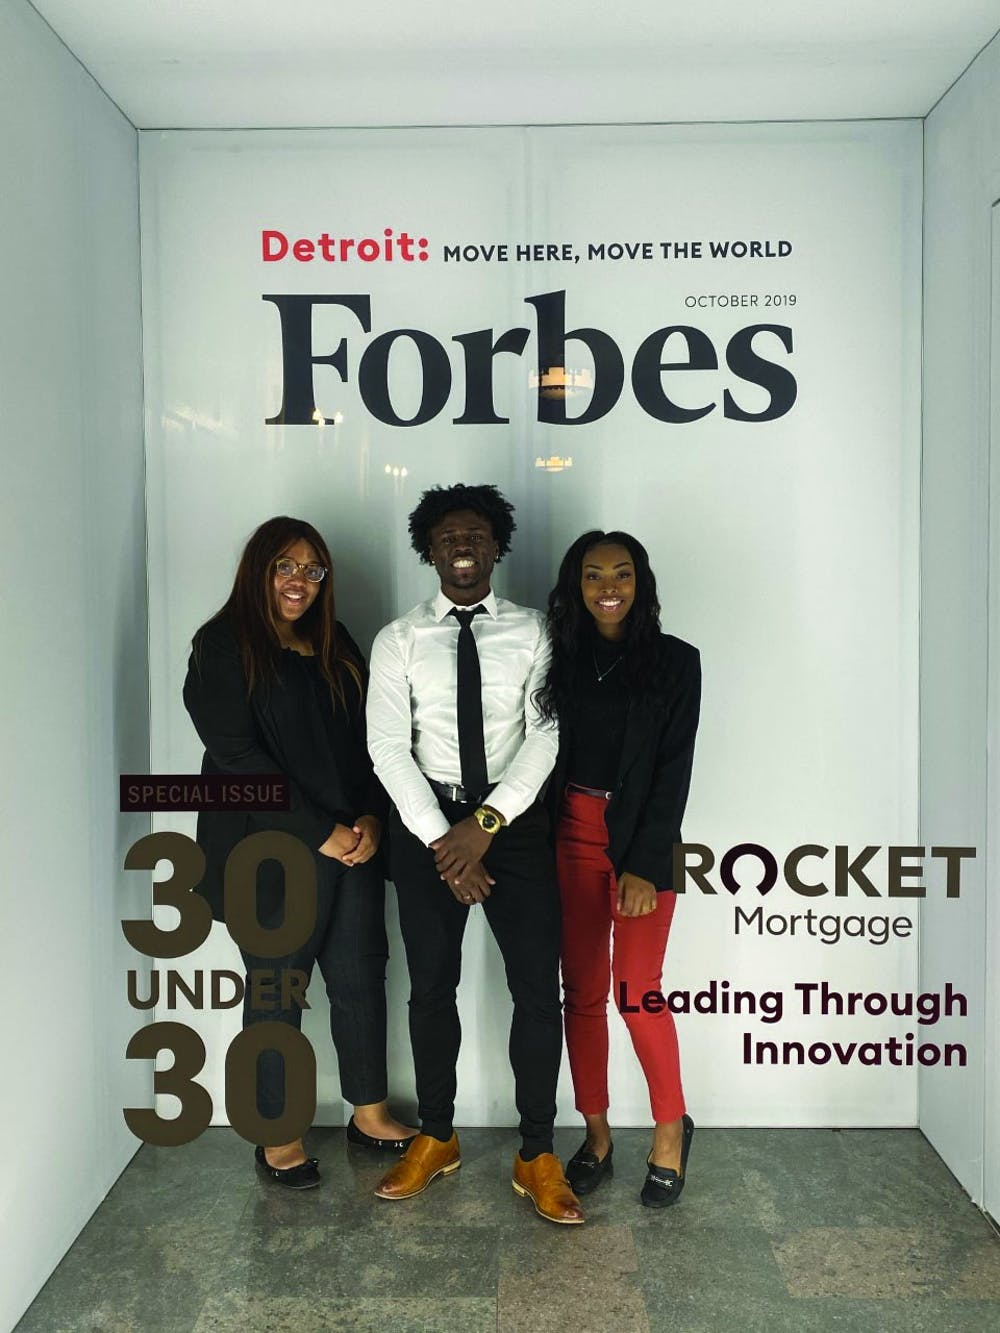 <p>Senior Kaylah Bell (left), junior Aric Fulton Jr. (middle) and senior Tazia Williams (right) attend the Forbes Under 30 Summit Oct. 27-30 in Detroit. Bell, Fulton and Williams were three of 1,000 students selected to receive a scholarship which paid for the fee to attend the conference. Aric Fulton, Photo Provided</p>